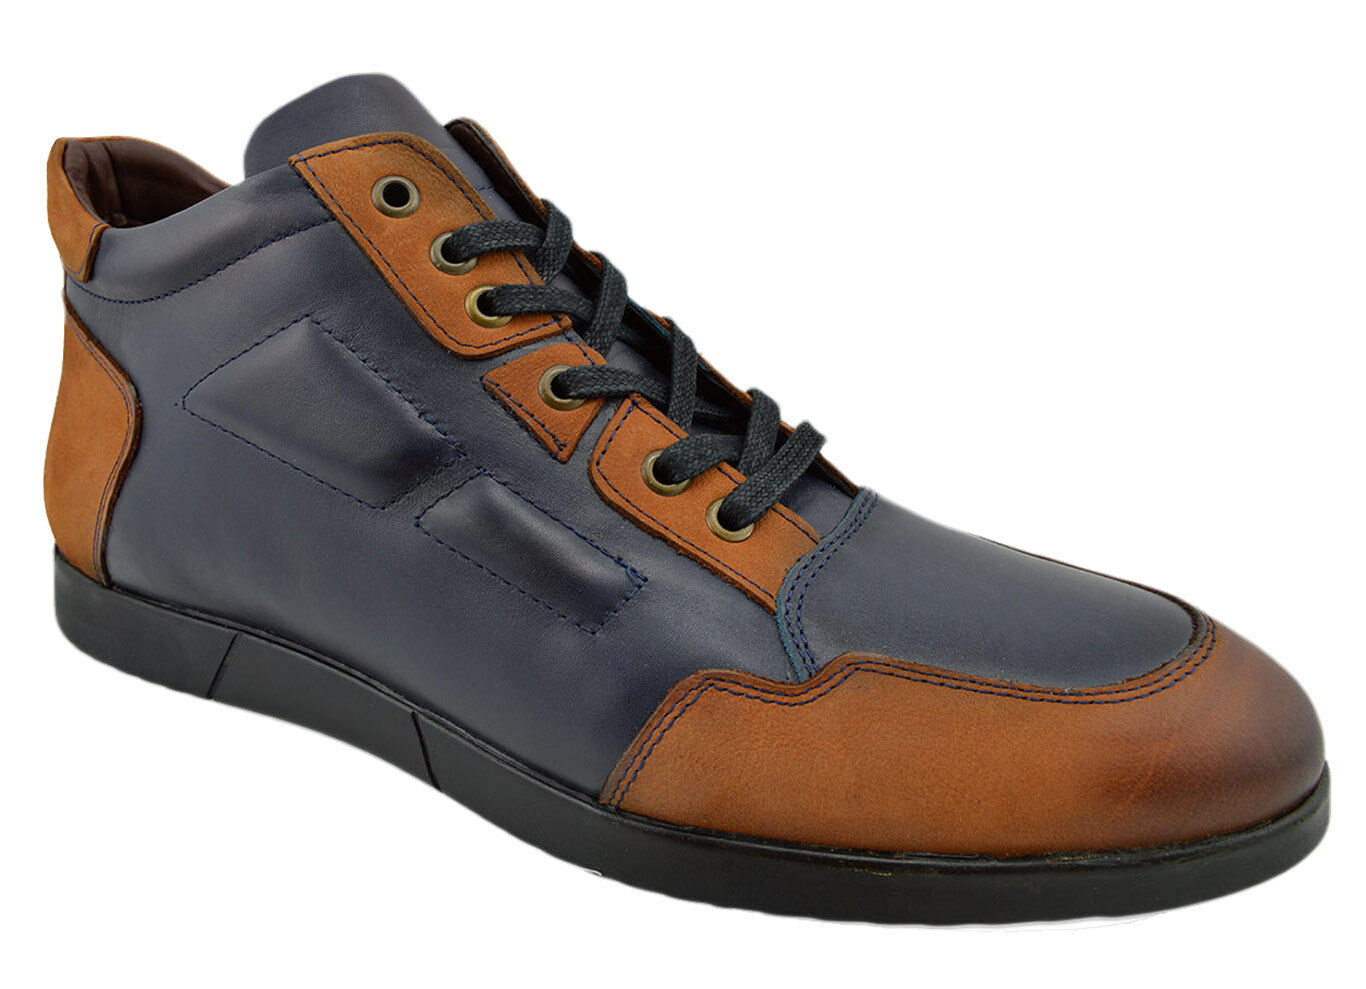 4d3c426b1d25a  230  230  230 OVATTO Blue Brown Leather Casual Men Sneakers Shoes NEW  COLLECTION 291ab2